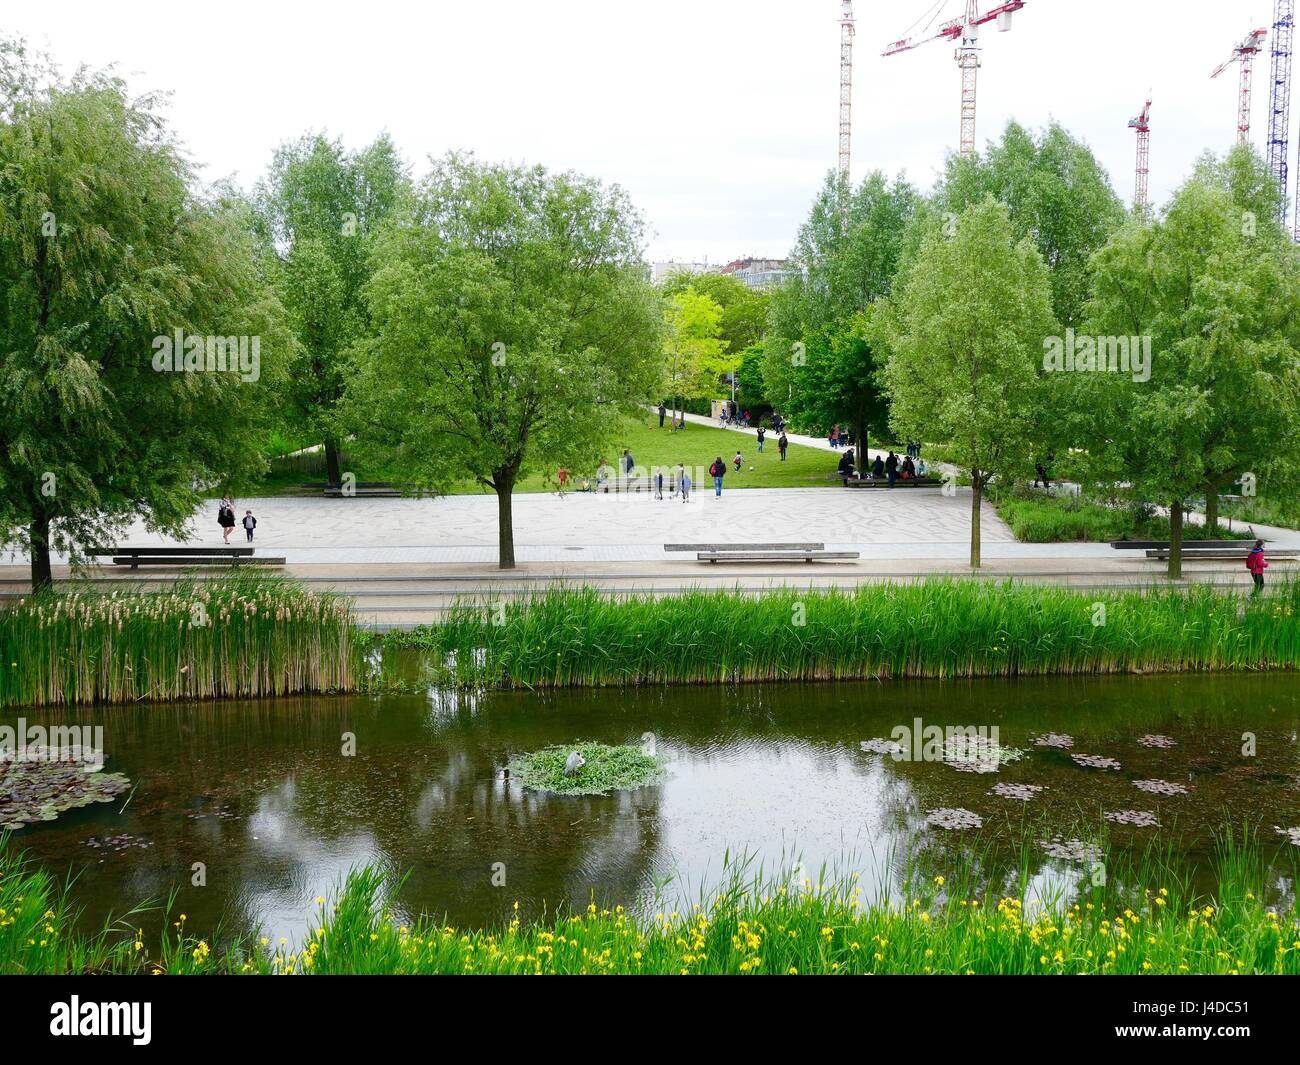 Parc Martin Luther King, the center of the new Clichy-Batignolles Eco District, 17th Arrondissement, Paris, France - Stock Image